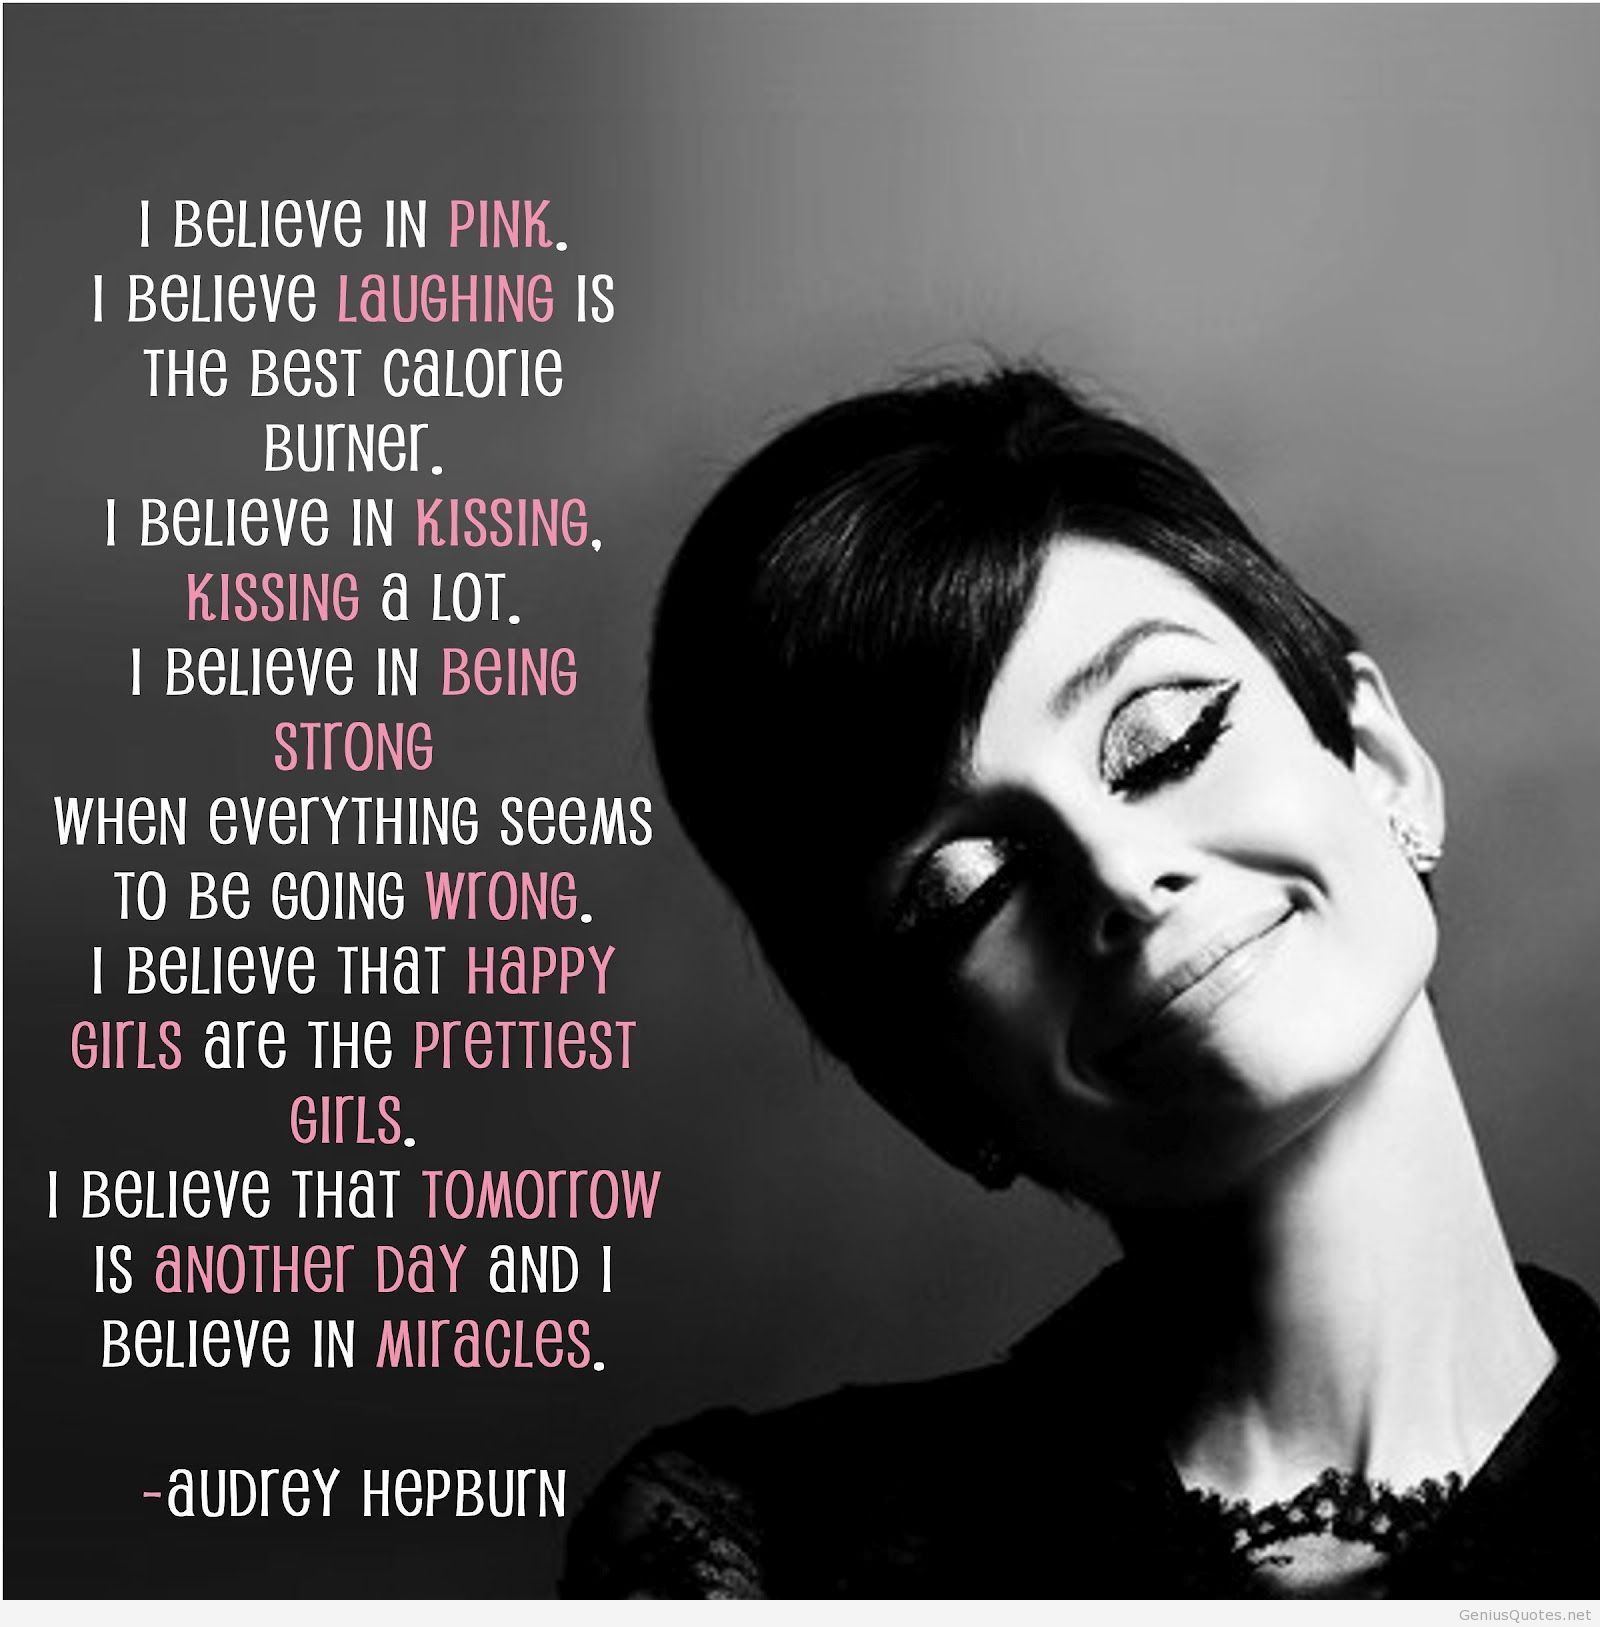 Quotes On Women I Believe In Pink  Woman Audrey Hepburn Quotes And Wisdom